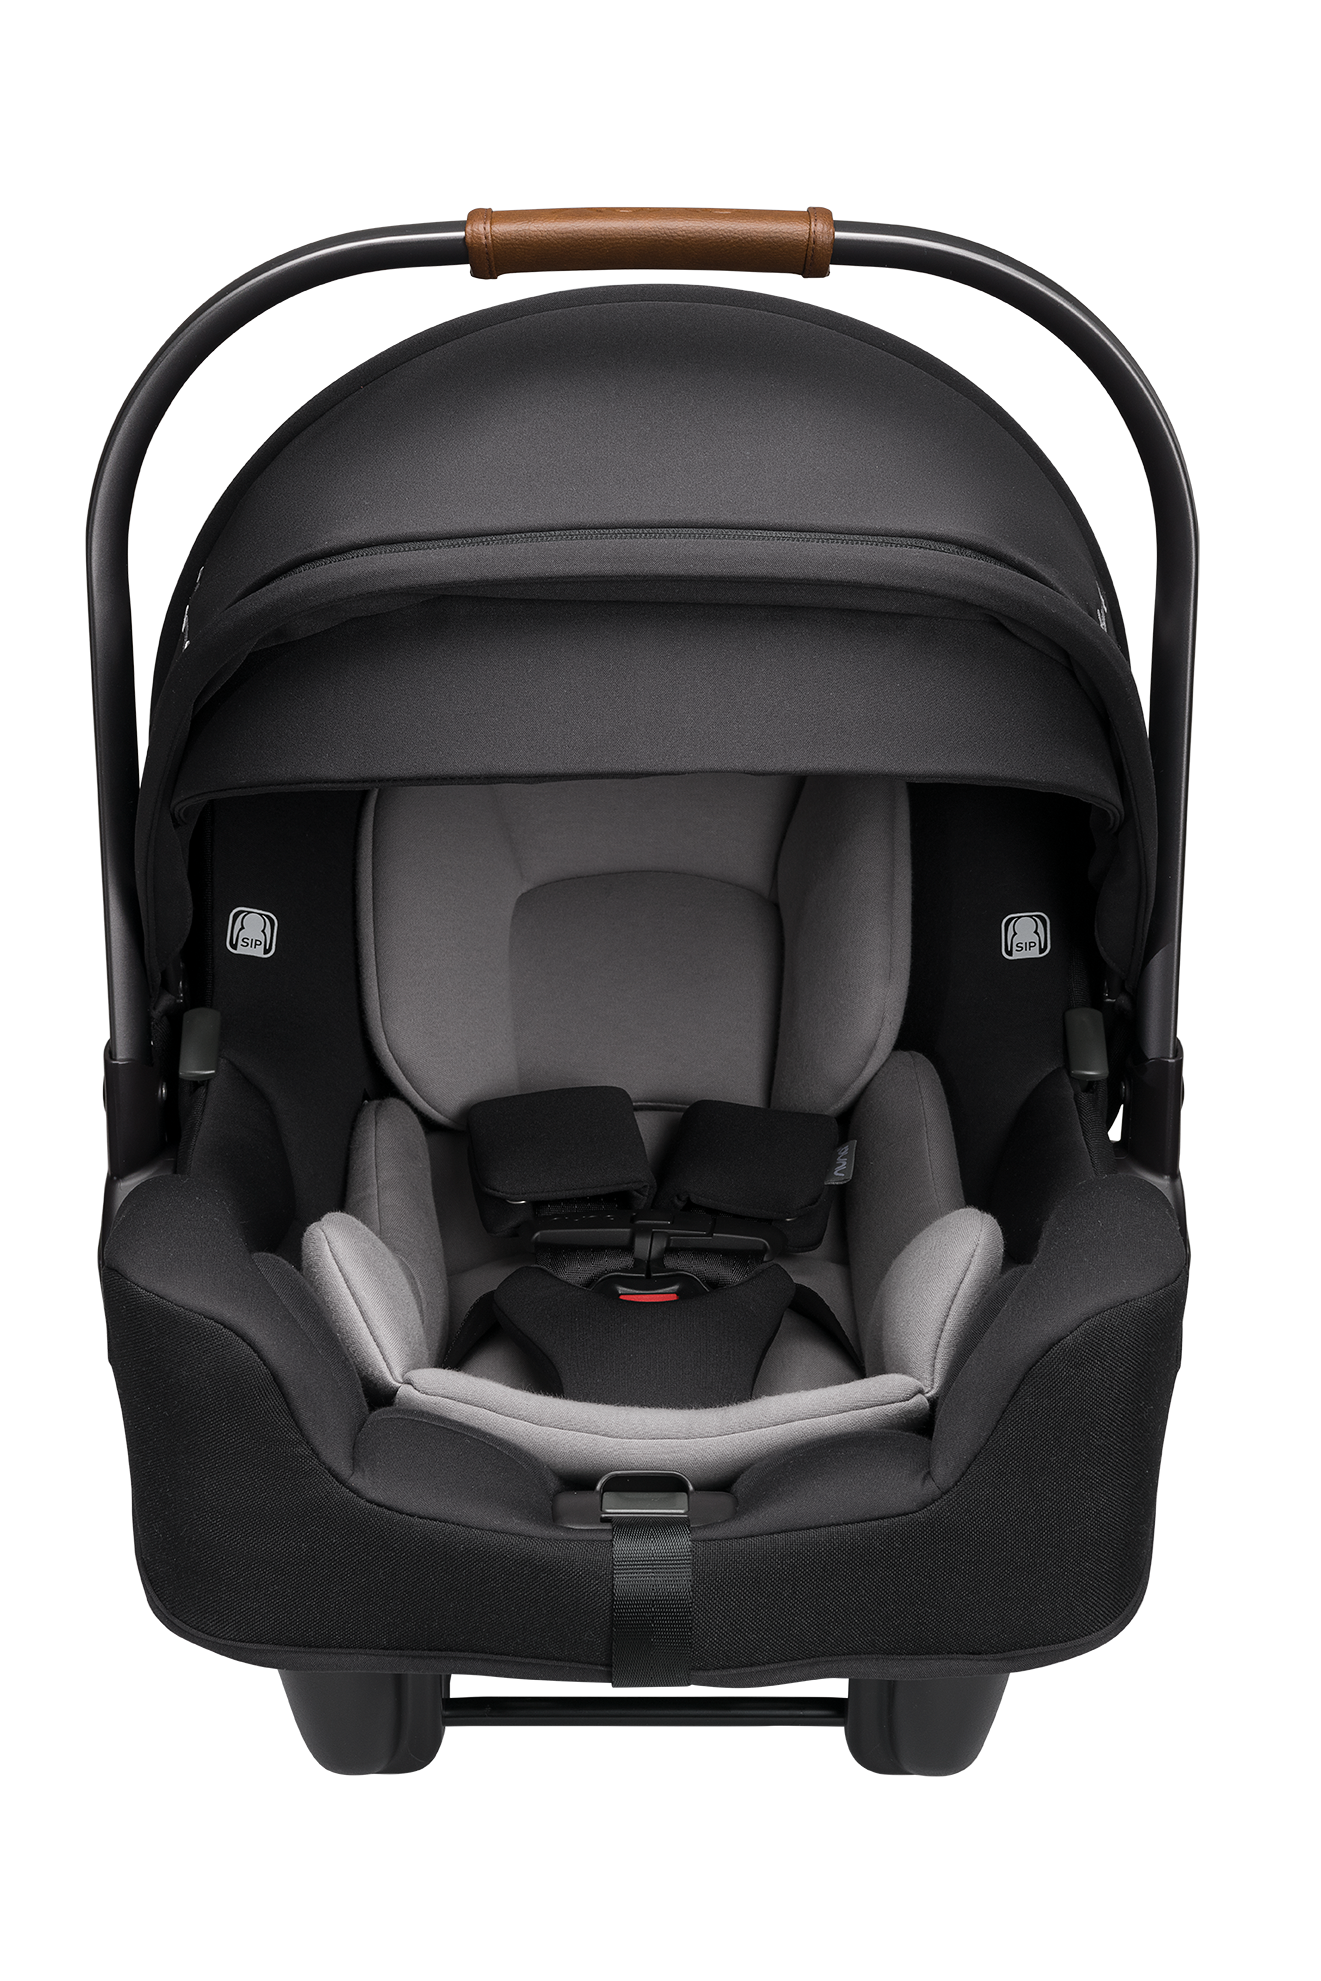 Nuna Pipa Rx Infant Car Seat In Caviar Shop The Lightest Car Seat On The Market At Sugarbabies